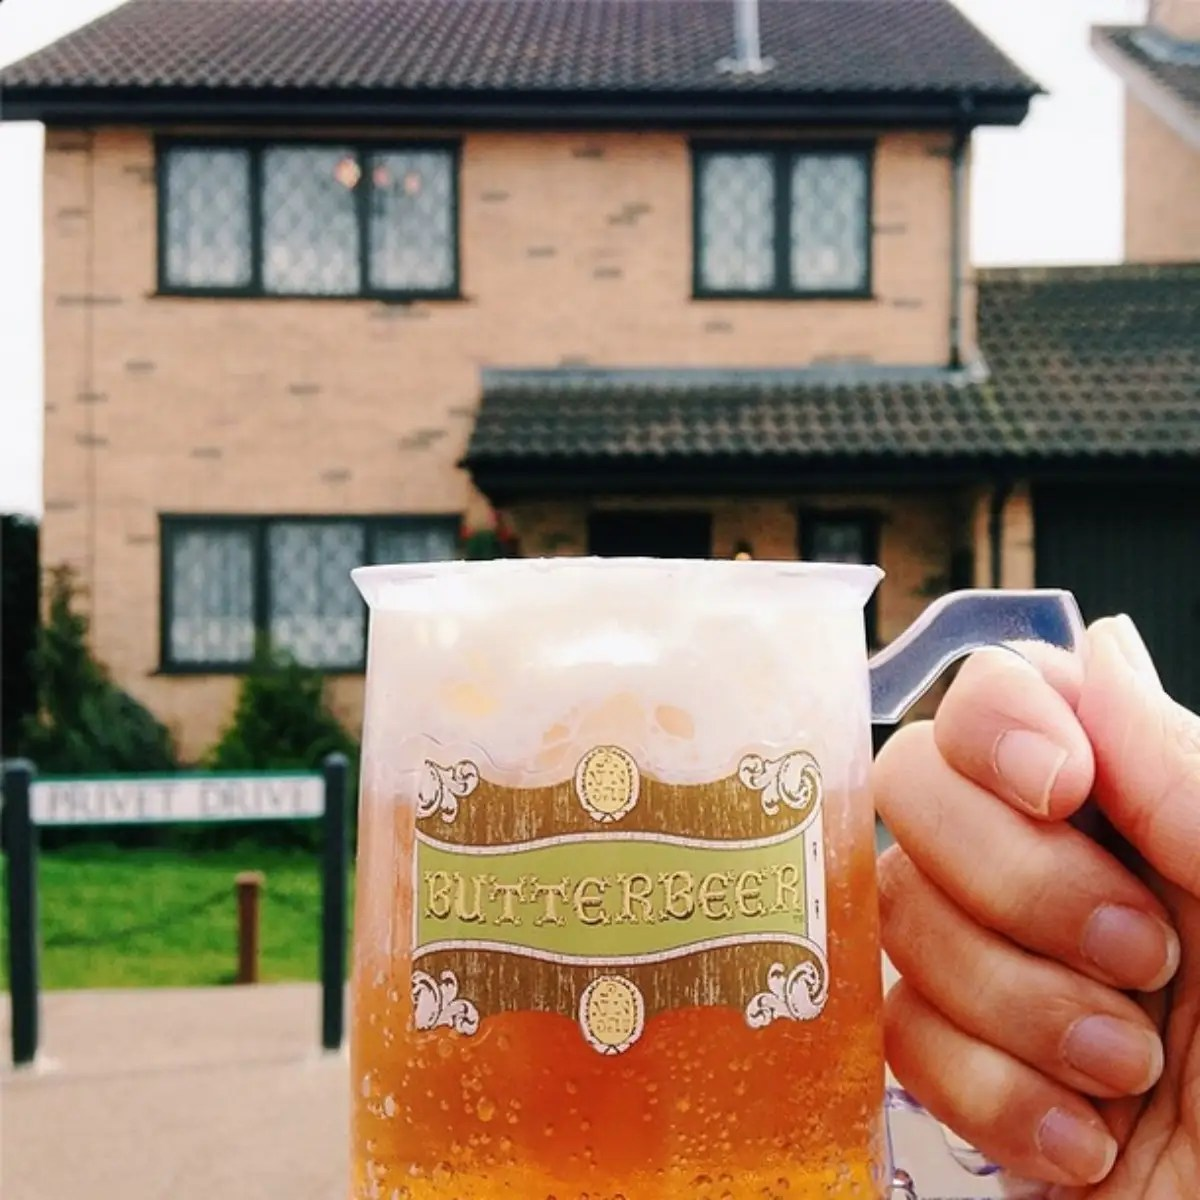 Butterbeer-ing at 4 Privet Drive. Many people have asked me what this tasted like: its like root beer float with a bit of caramel sauce.